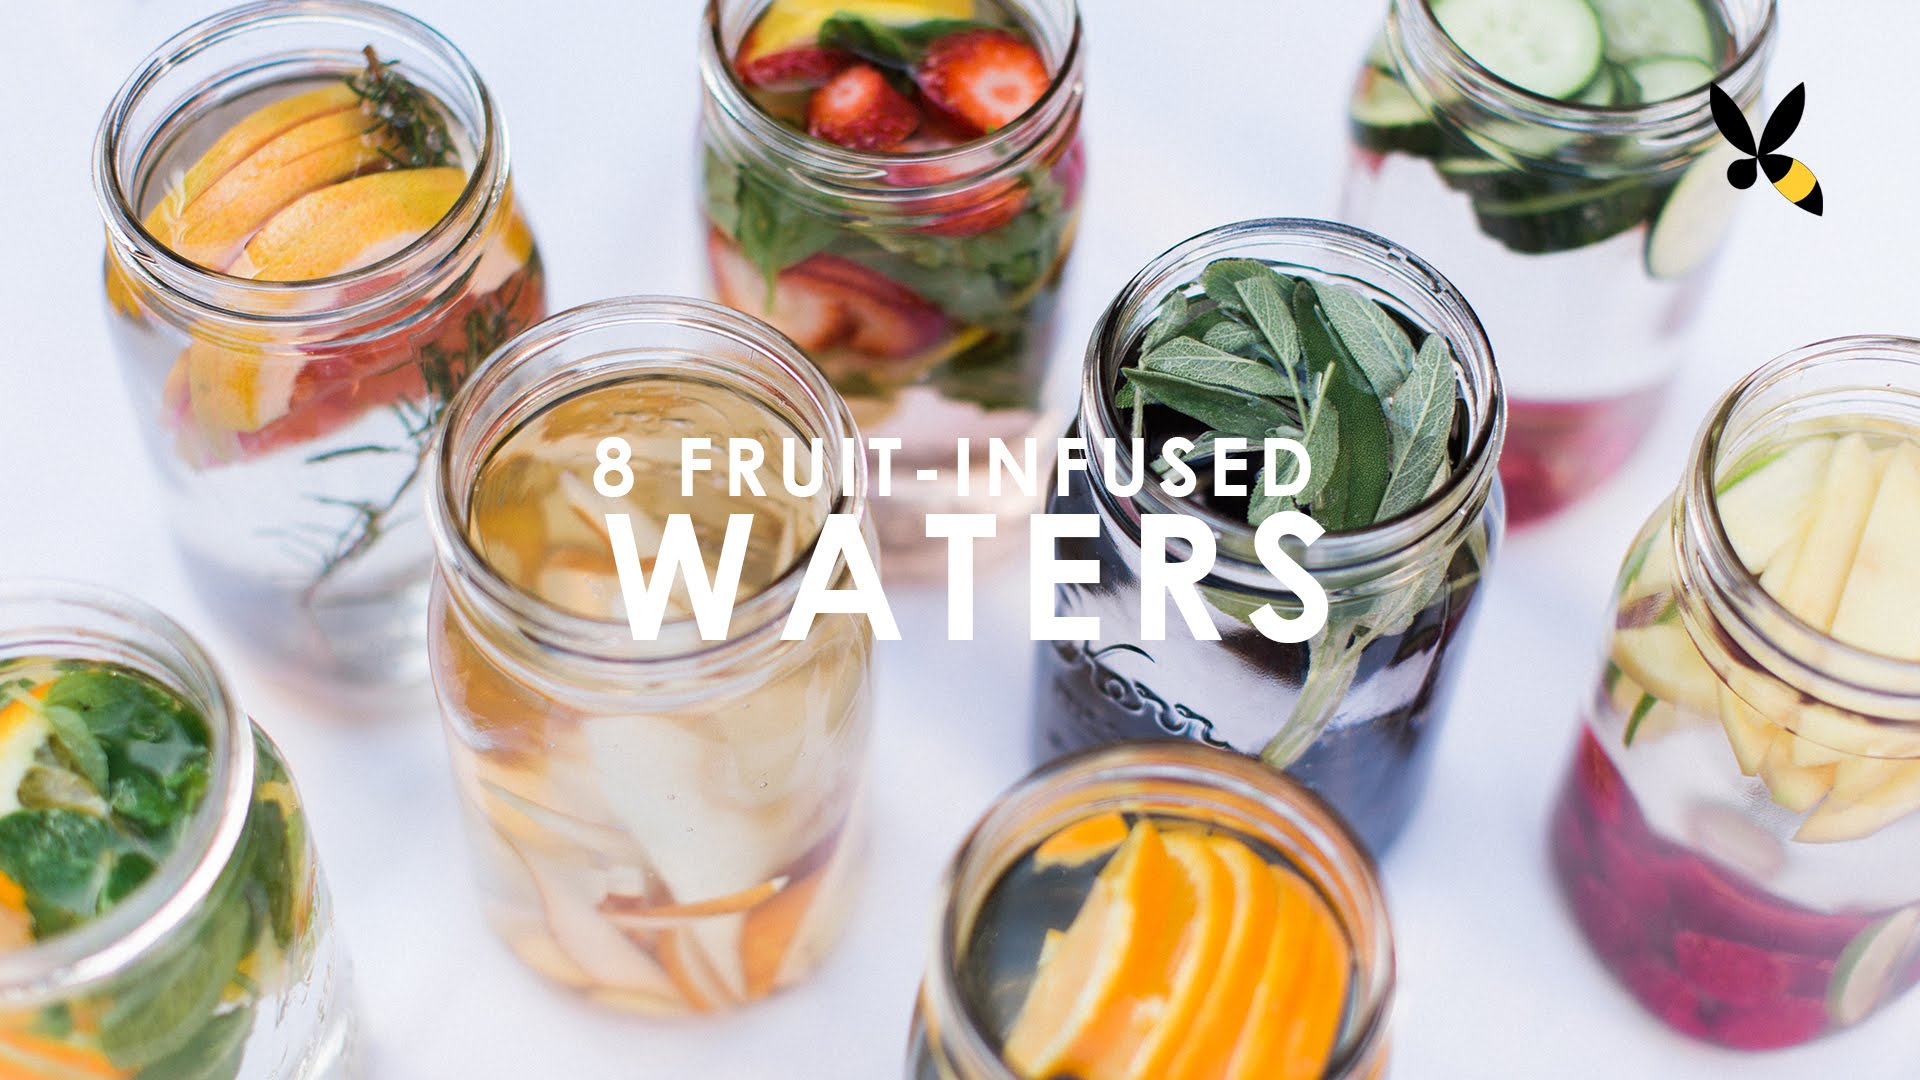 「健康一夏!水果風味水」- Fruit Infused Water: 8 Ways to drink more Water